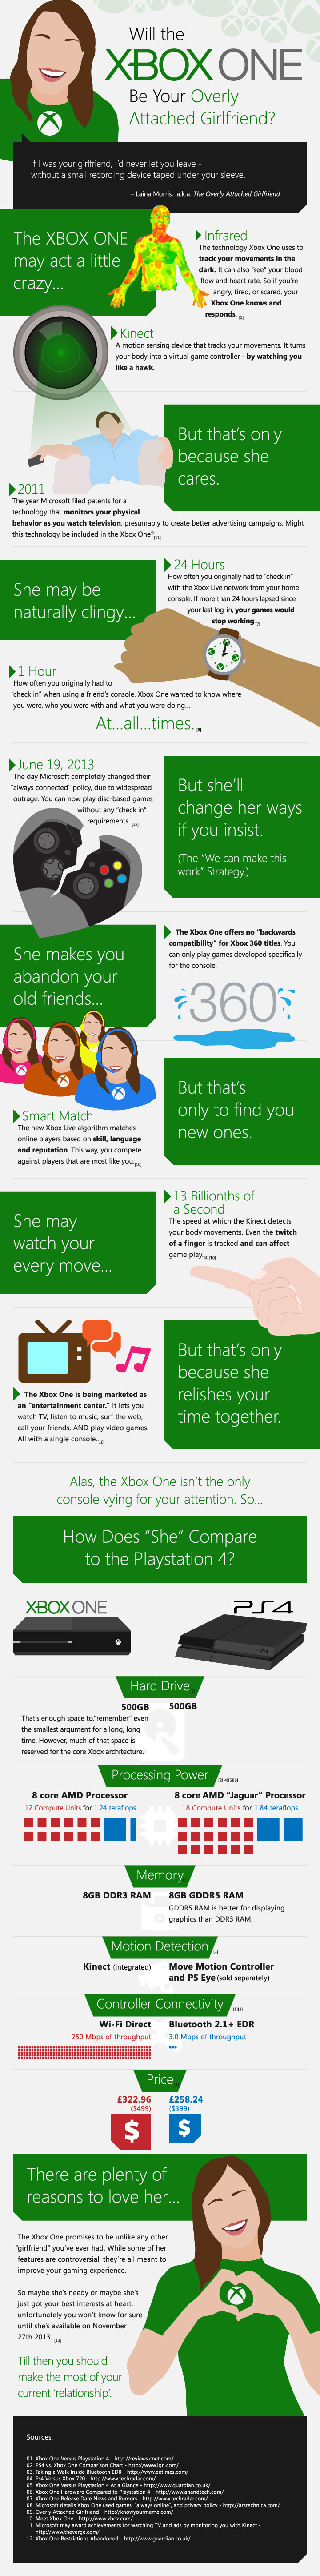 Will the Xbox One Be Your Overly Attached Girlfriend?